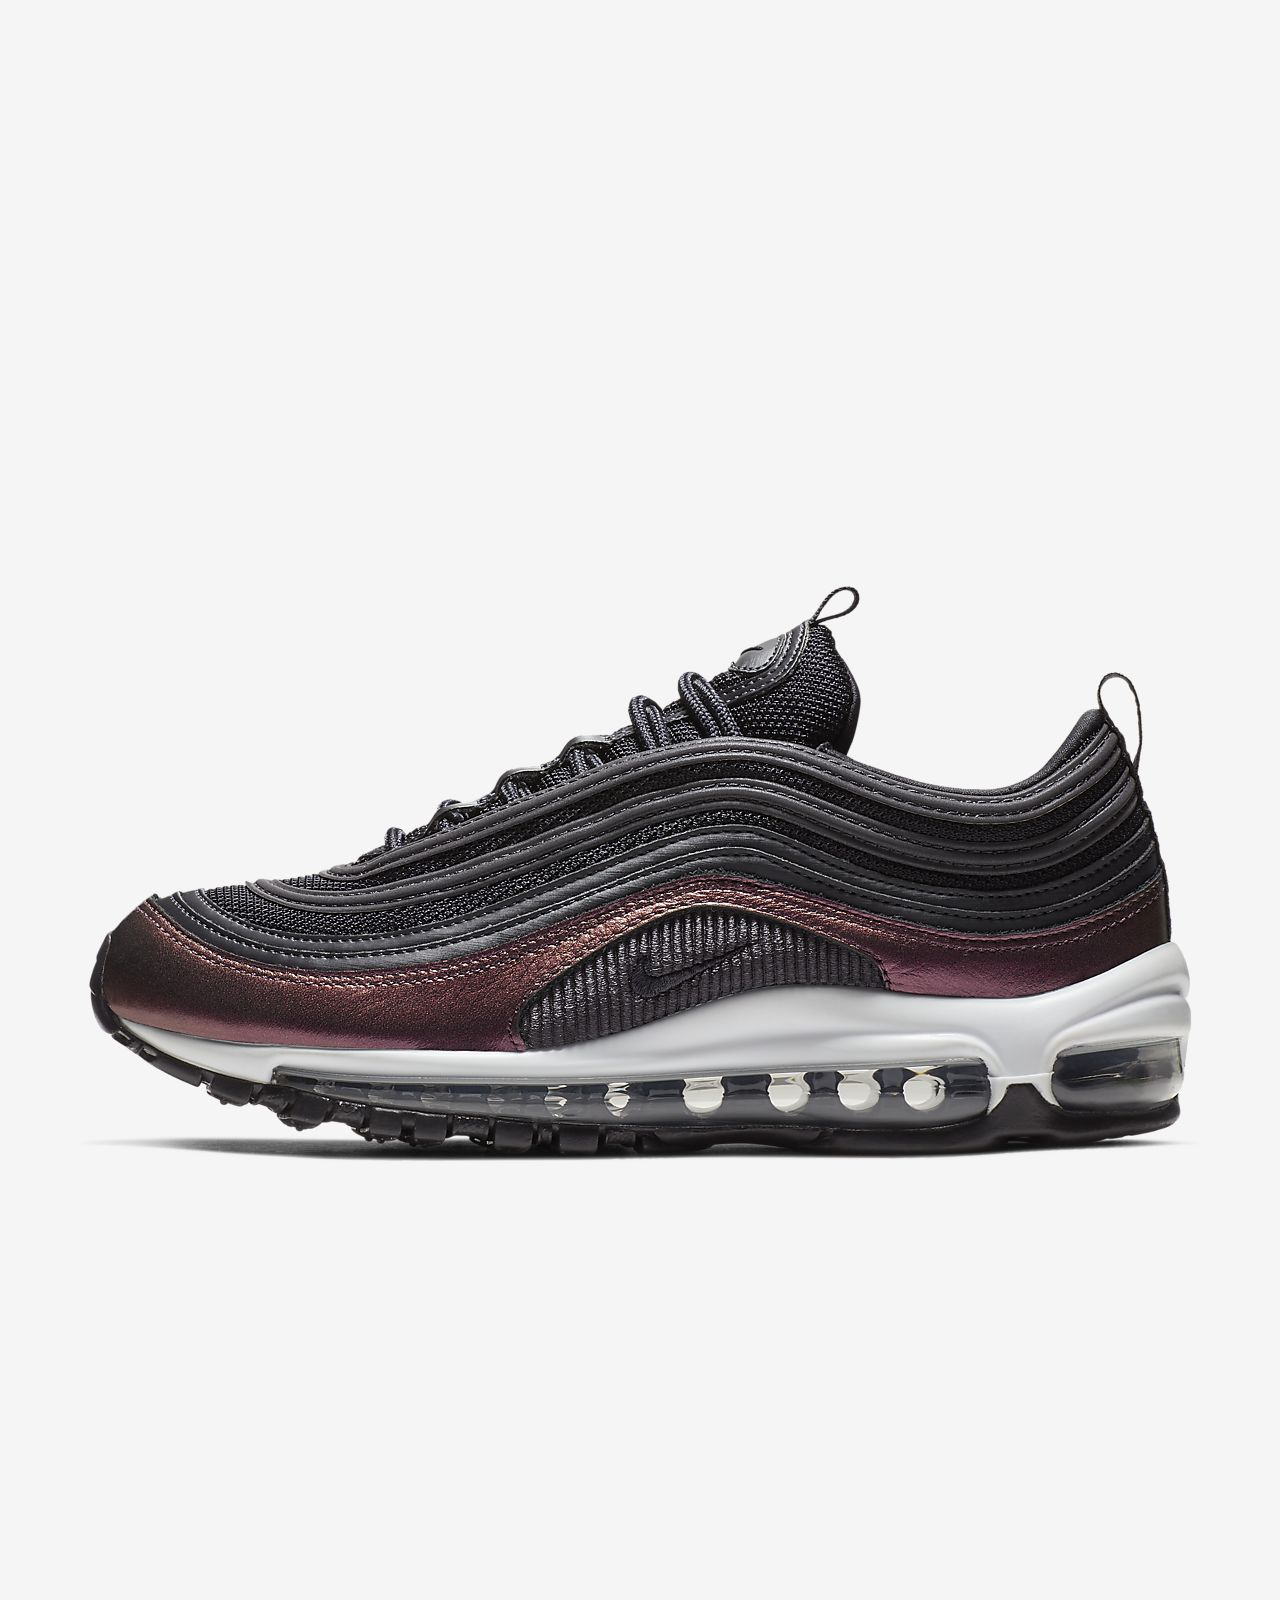 on sale ea178 26f8b ... france chaussure nike air max 97 se pour femme bd1c6 7d036